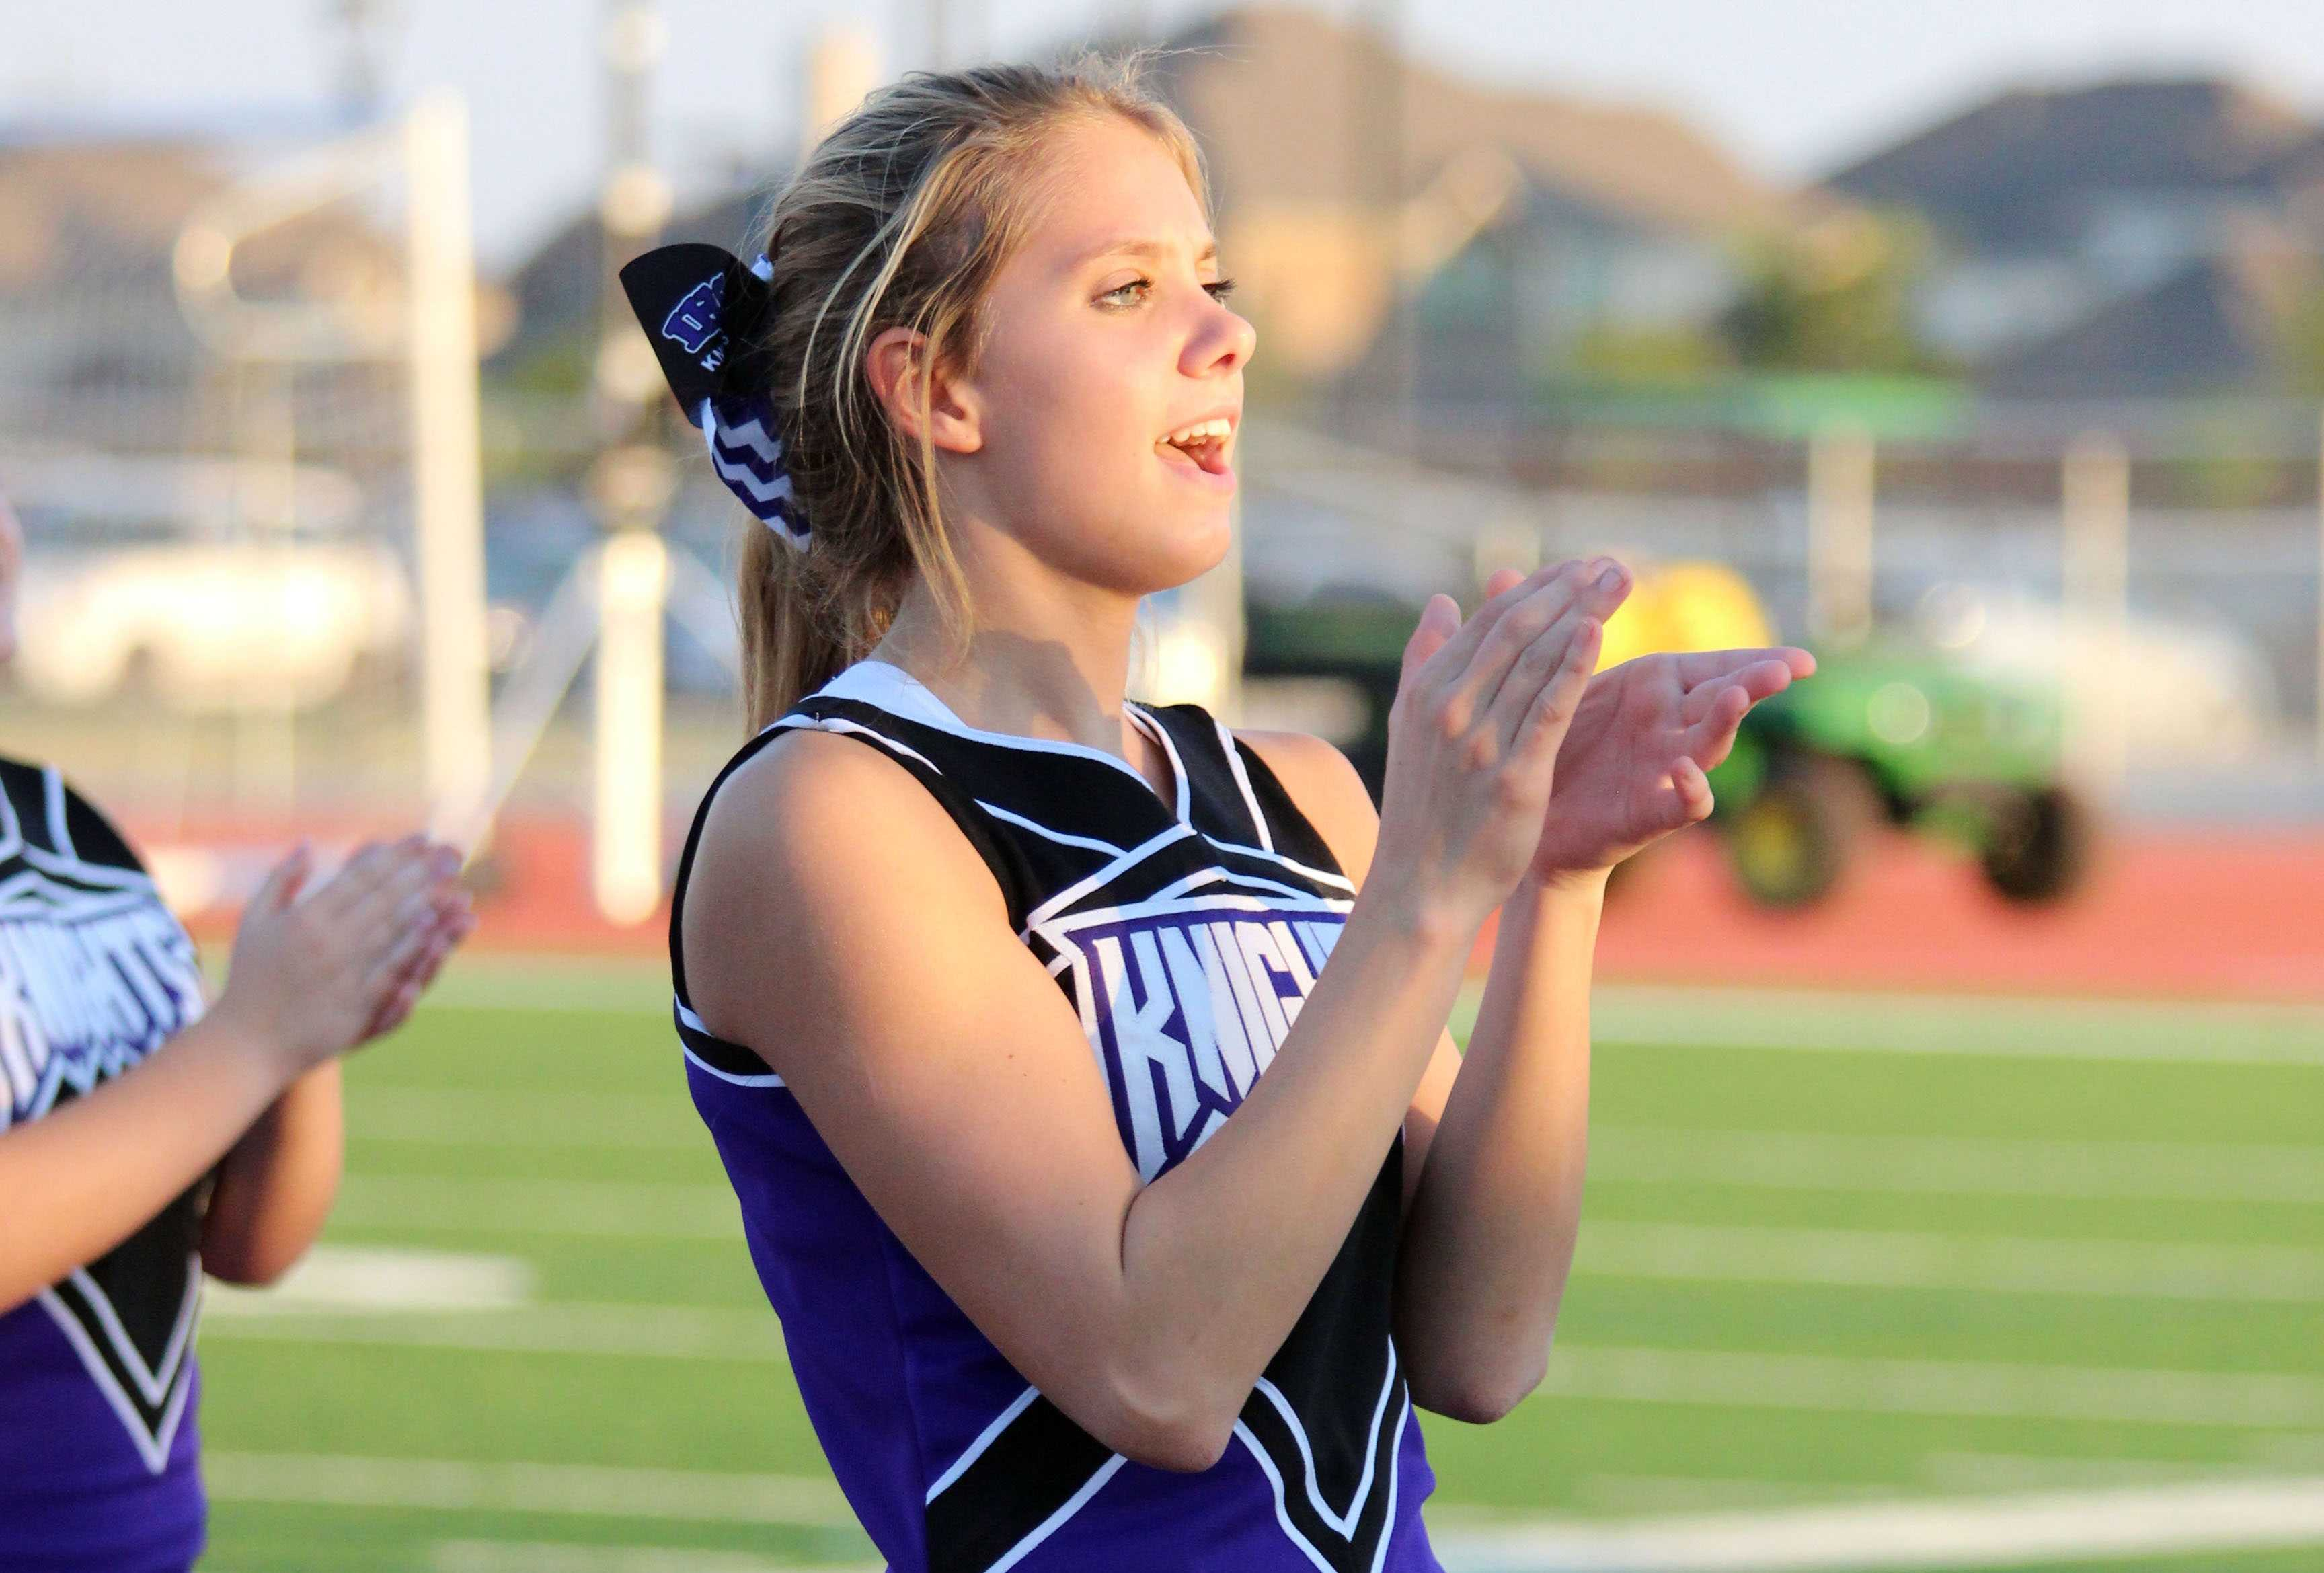 Peyton Harris shows her school spirit as co-captain of the cheerleading squad.